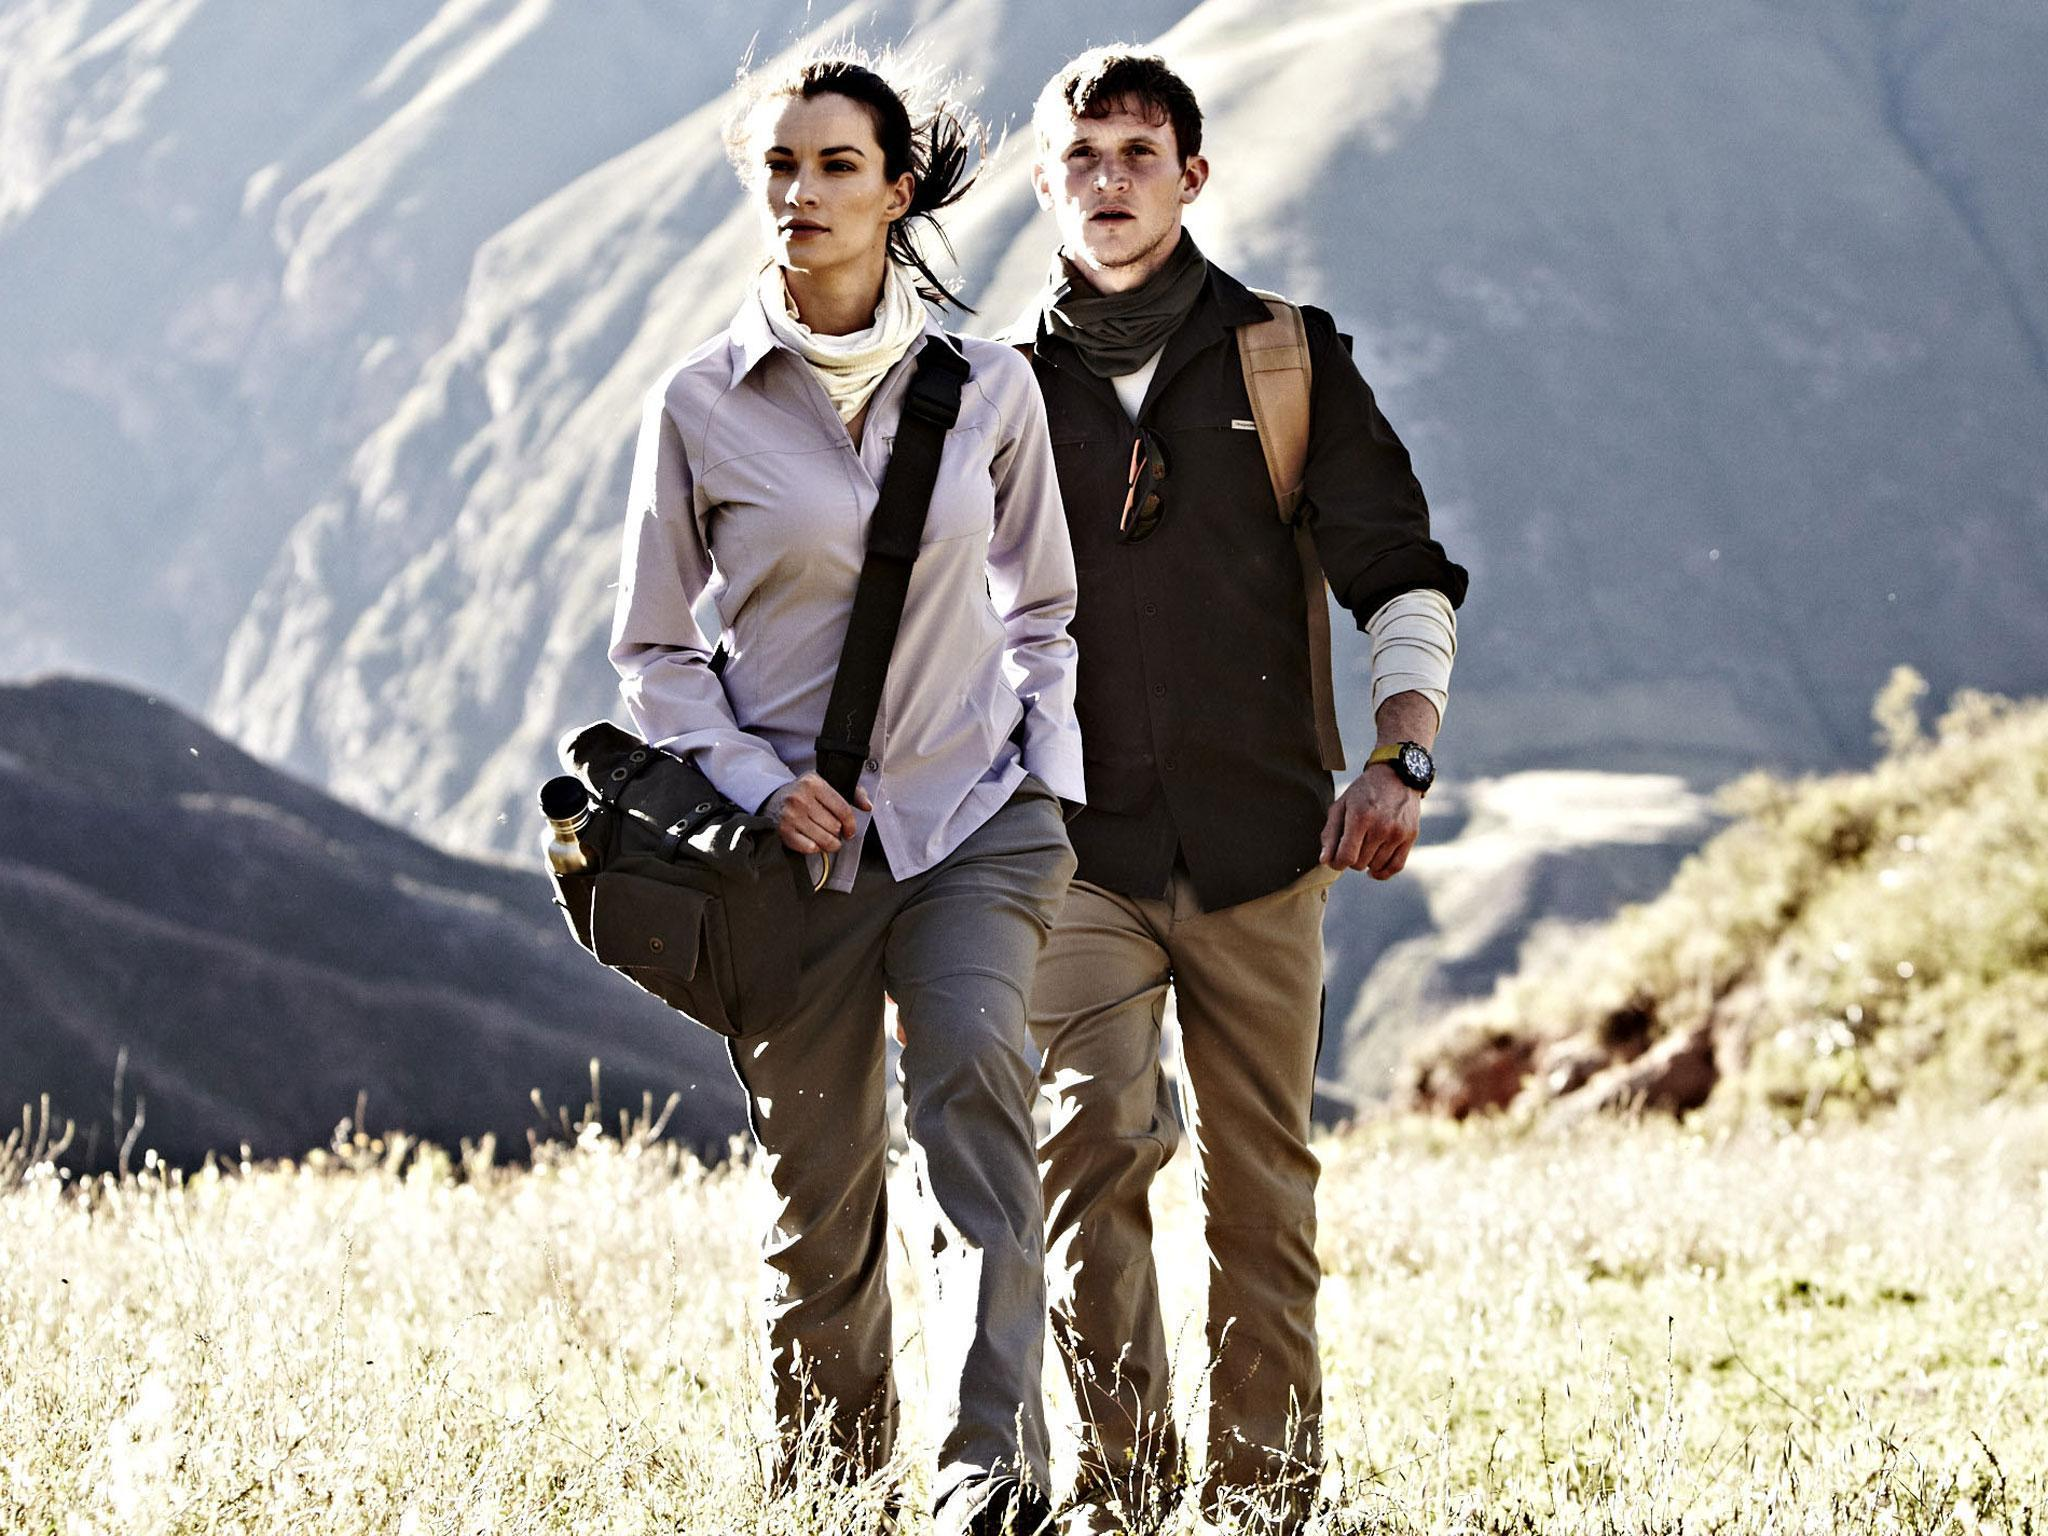 Watch - Hiking stylish pants video